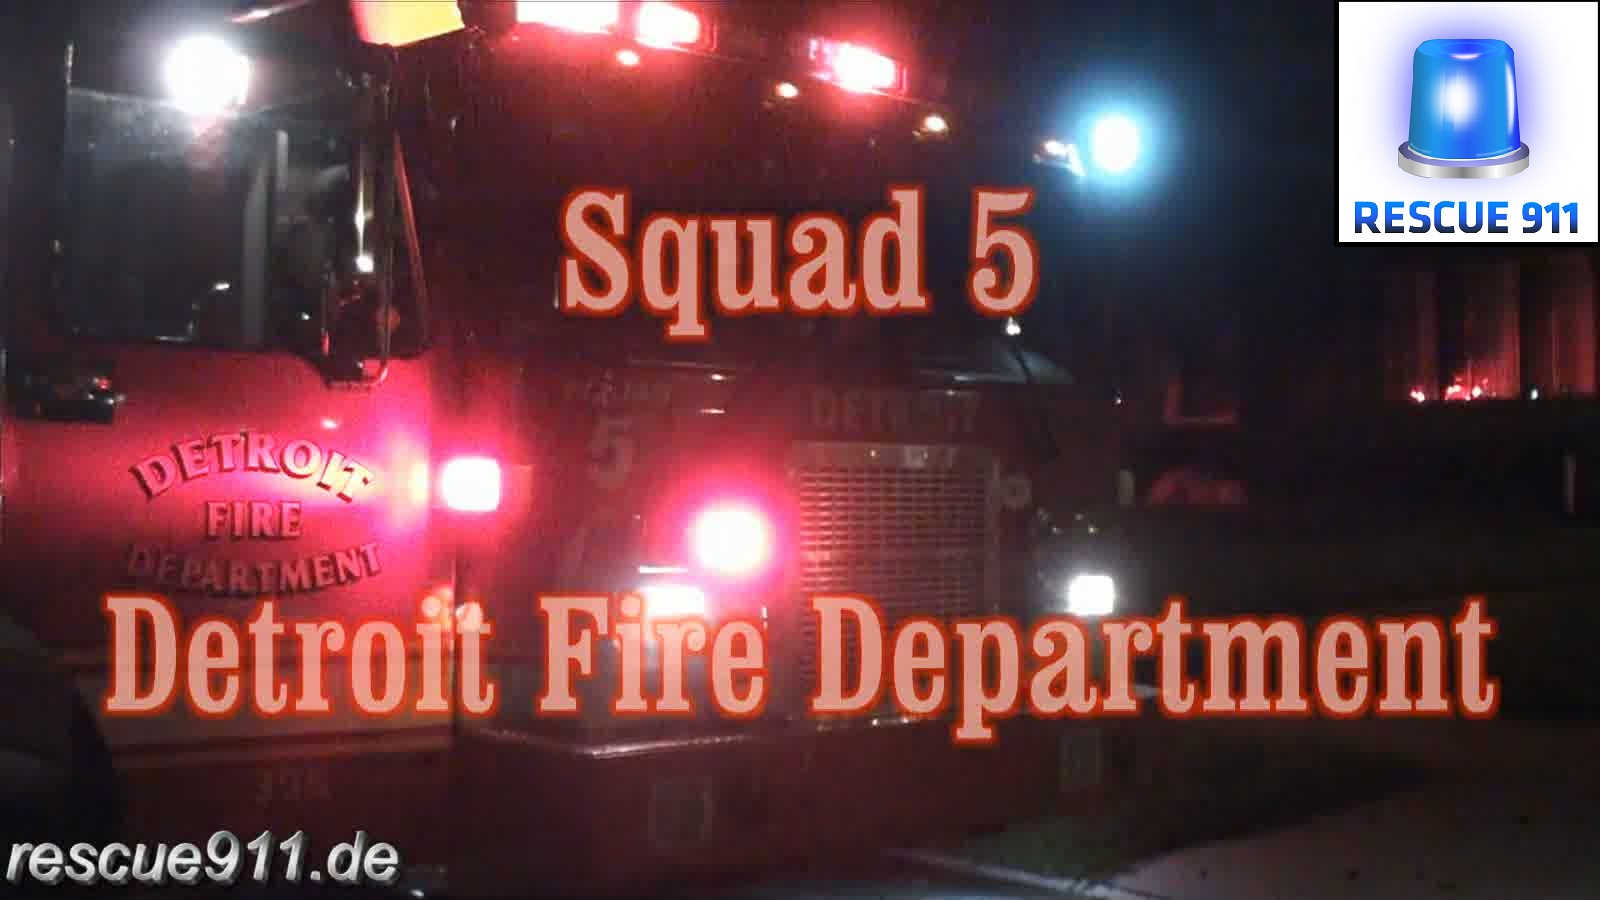 INSIDE - Squad 5 Detroit Fire Department (collection) (stream)